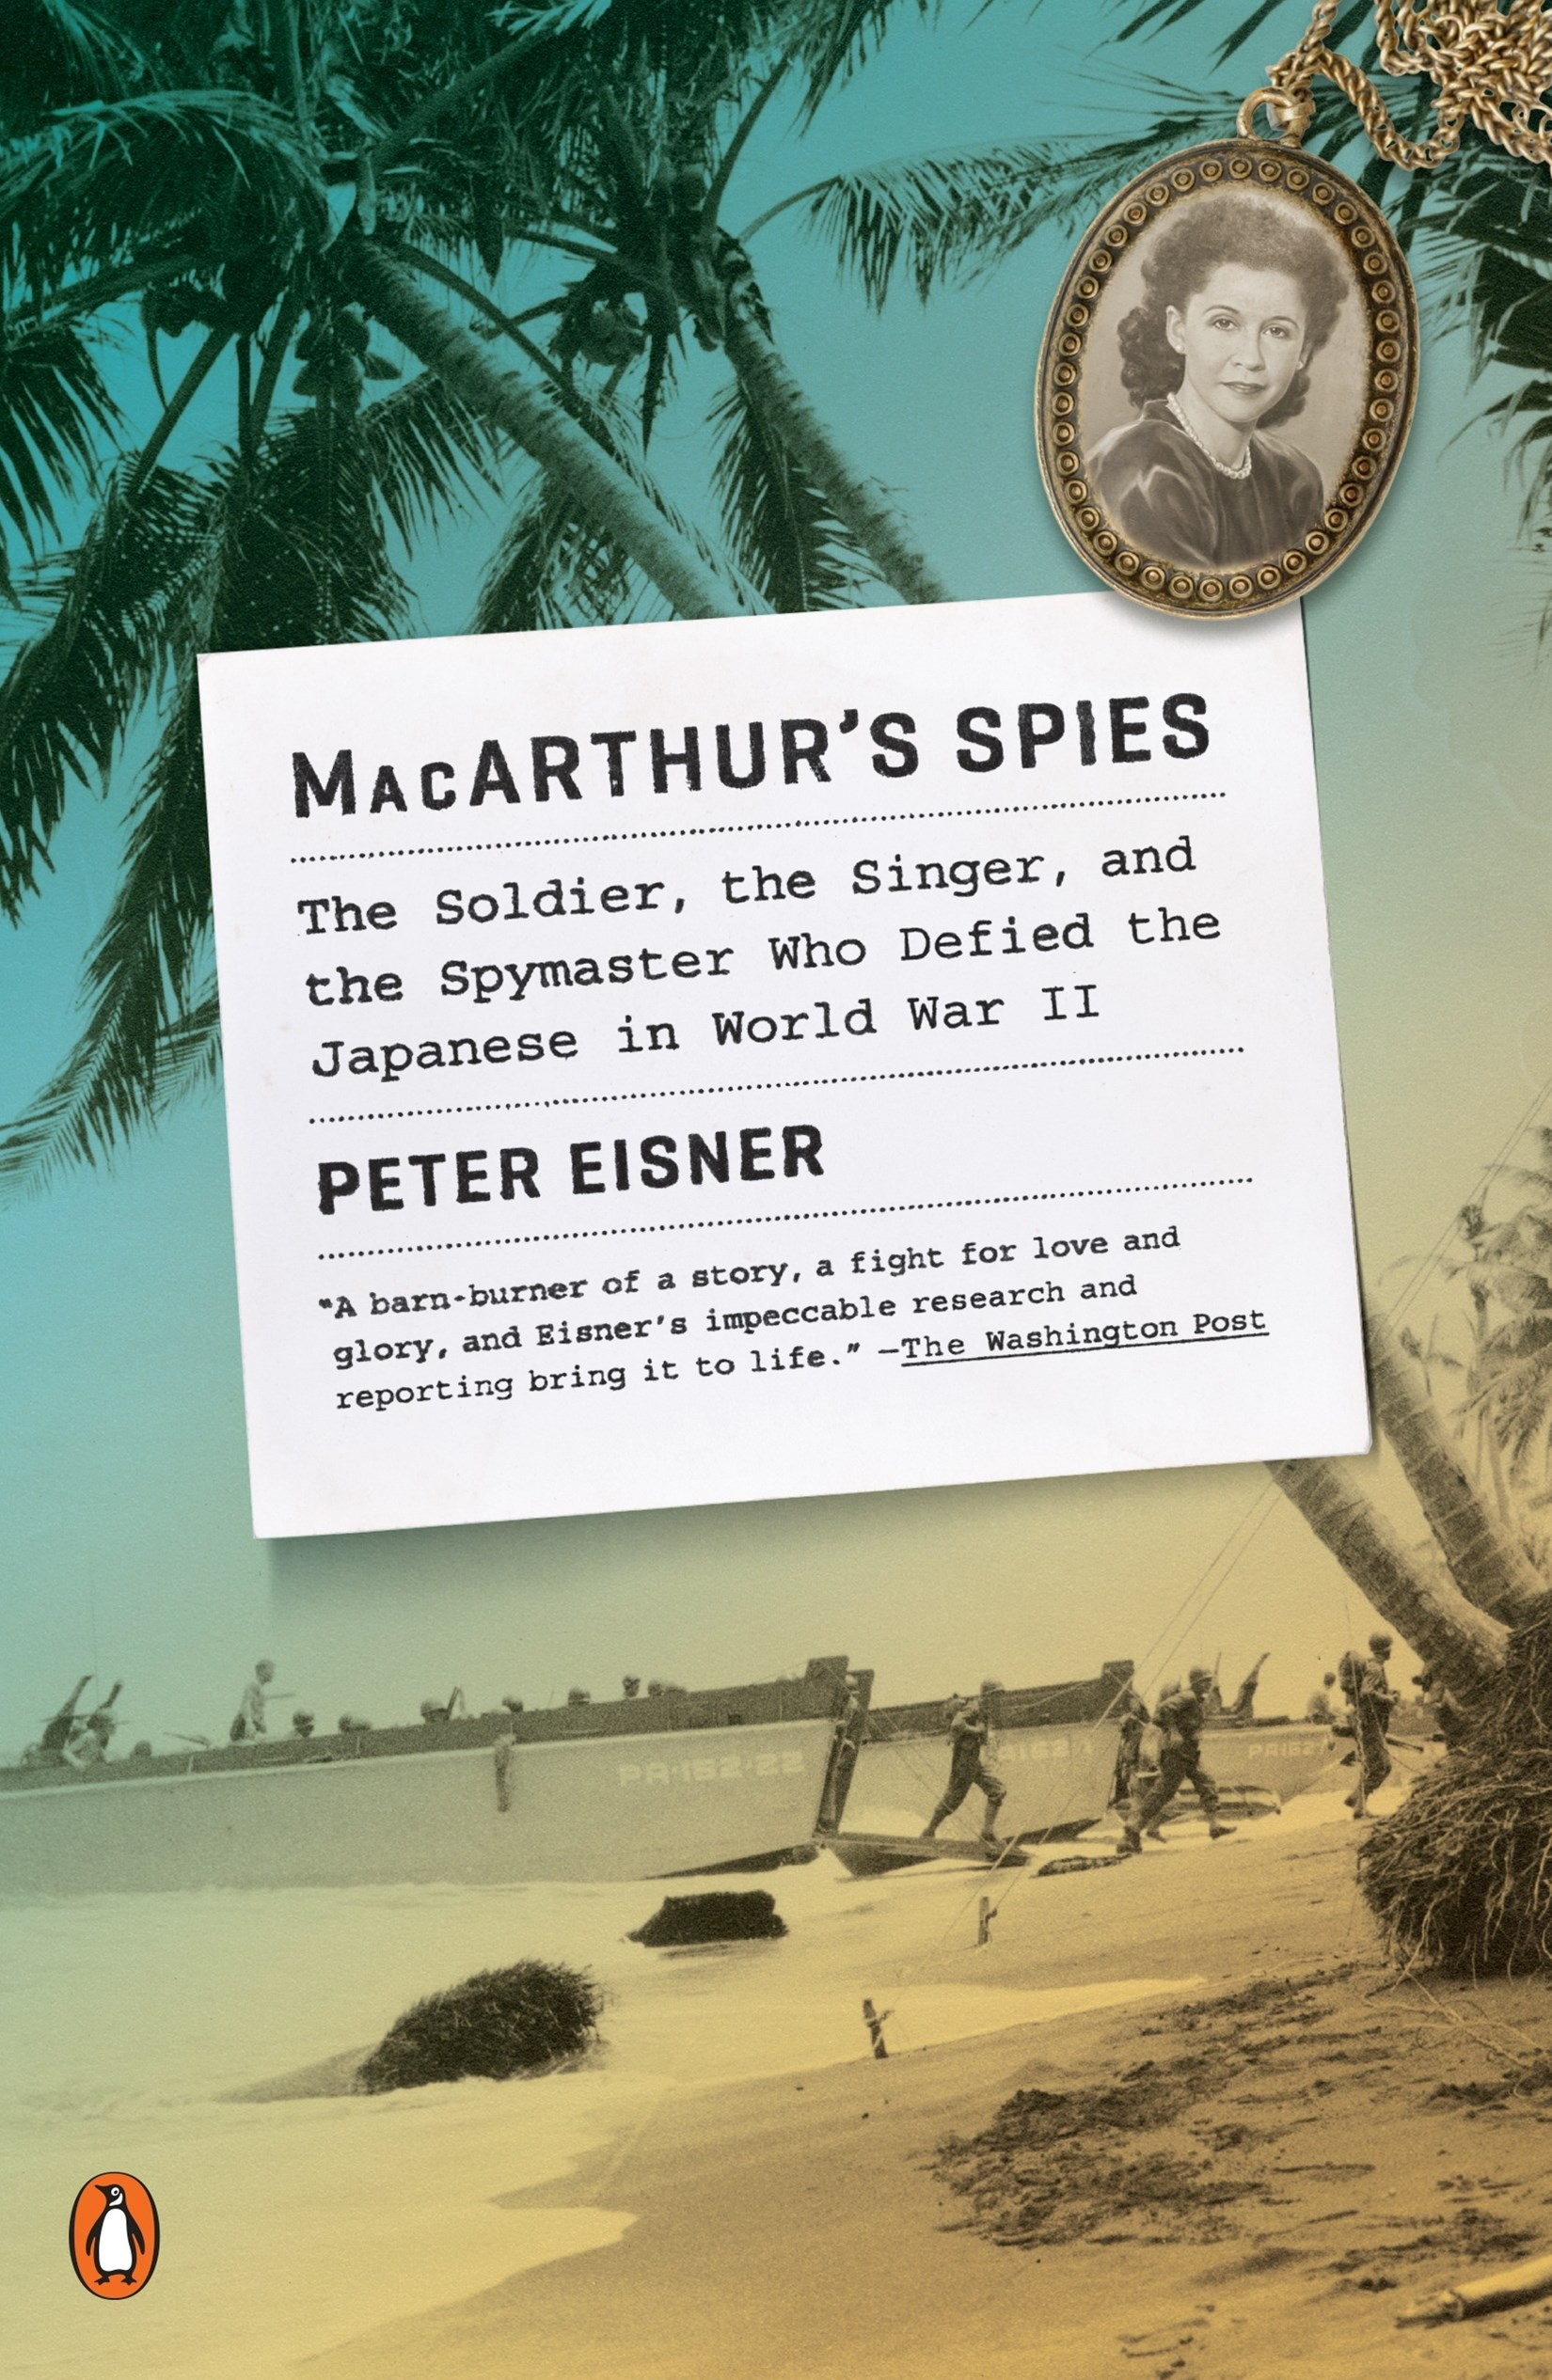 Macarthur's Spies: The Soldier, the Singer, and the Spymaster Who Defied the Japanese in World WarII